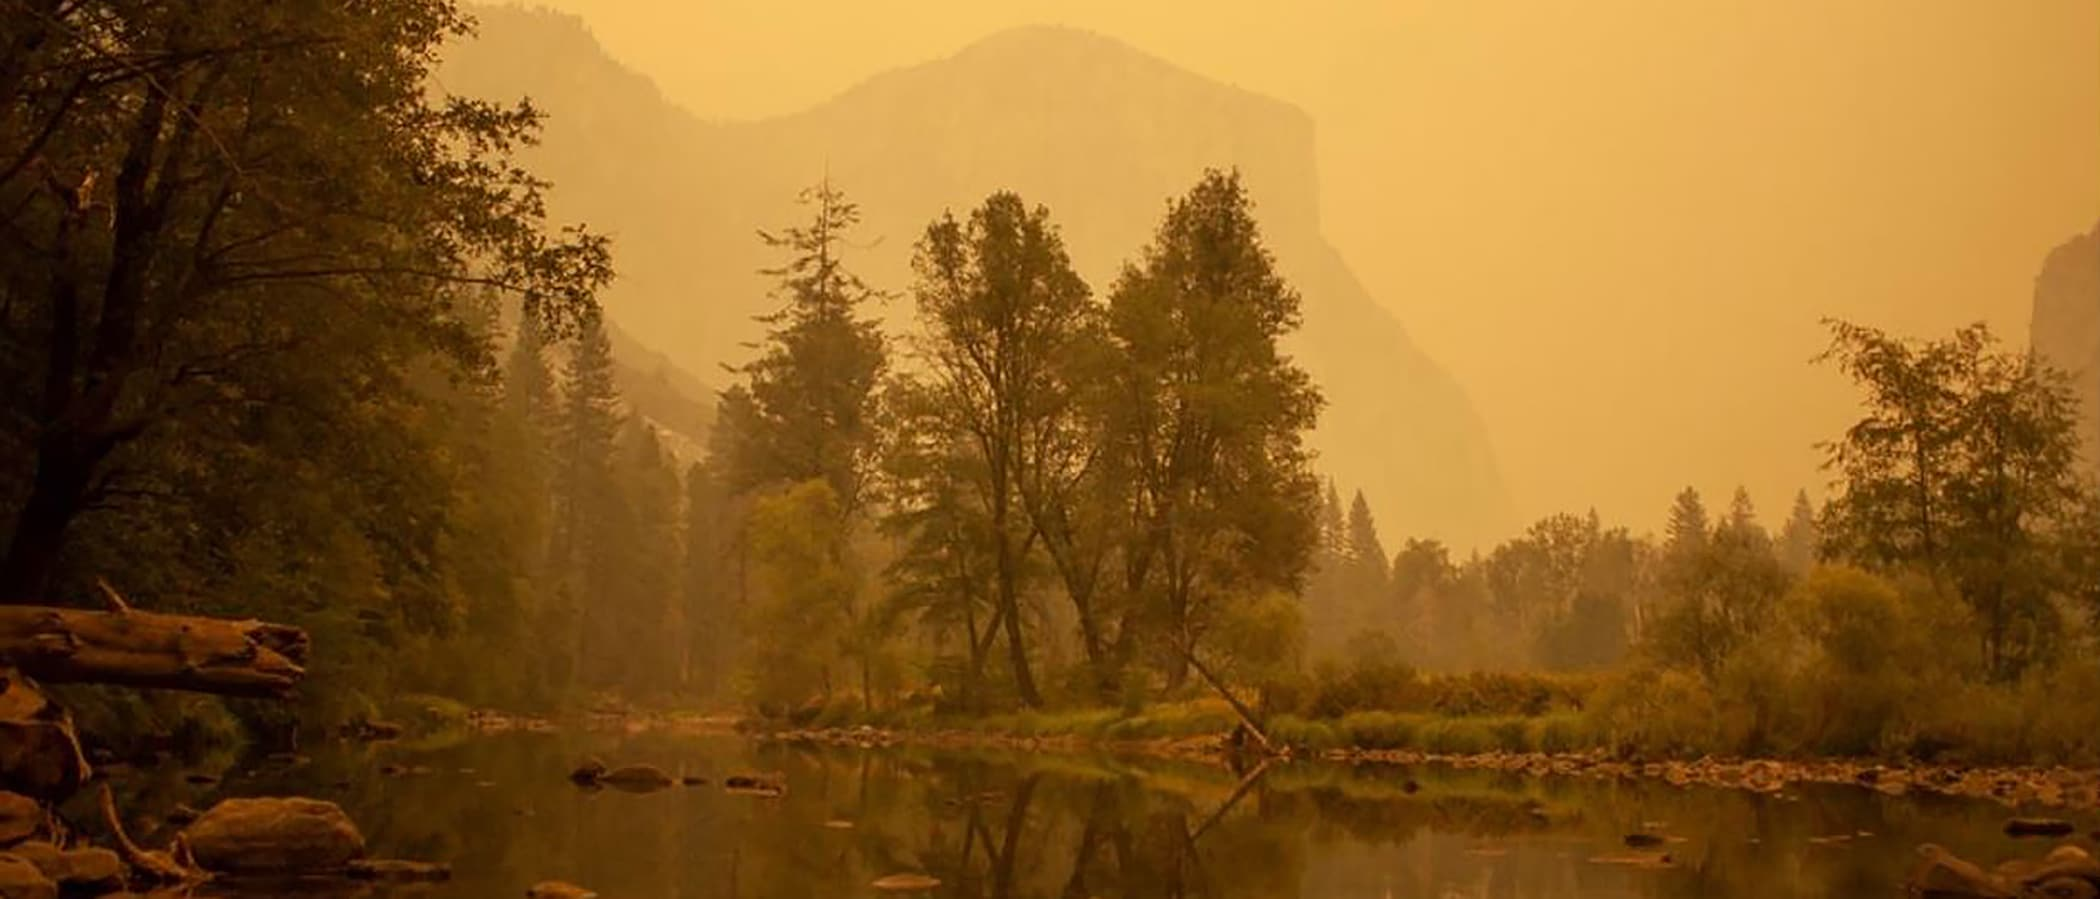 View of the Merced River flowing through a very smokey Yosemite Valley with orange smoke hanging in the air and coloring everything in muted hues.